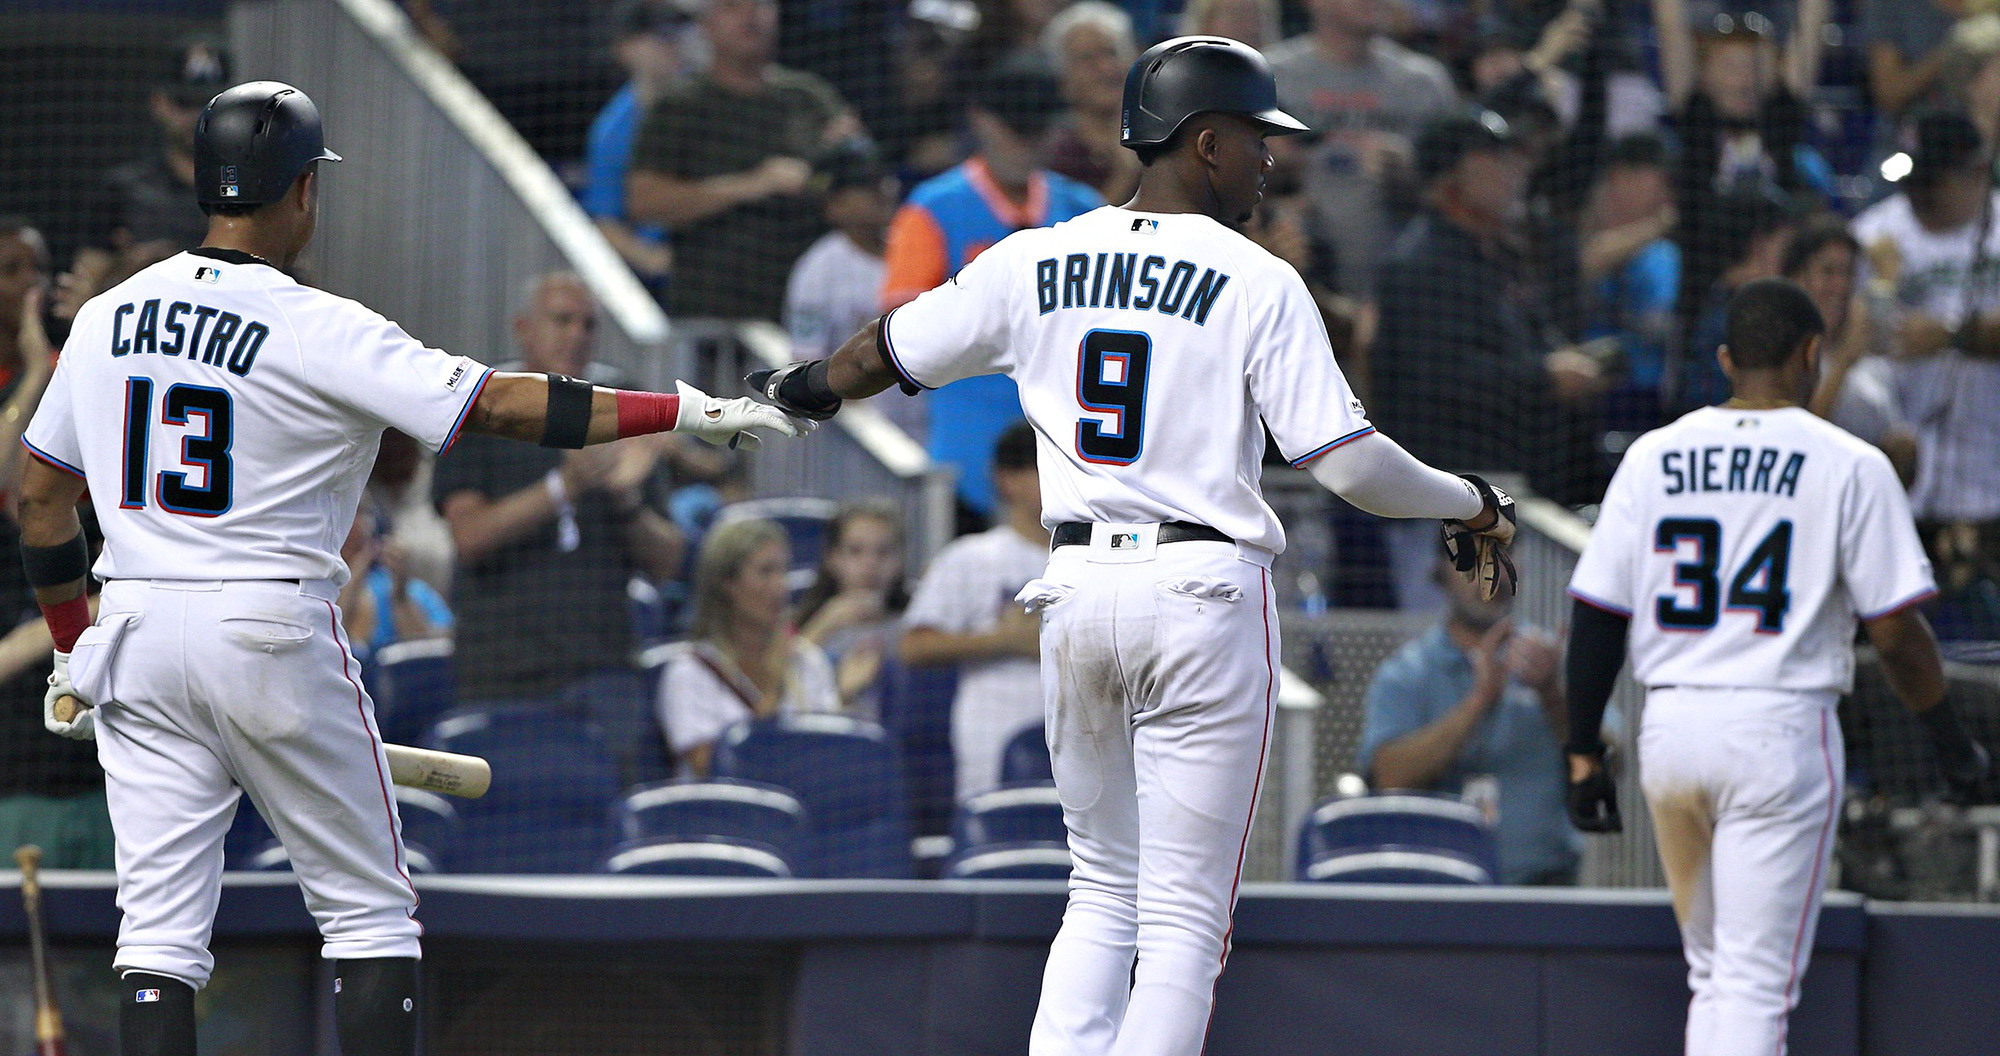 Lewis Brinson and Magneuris Sierra scoring in the bottom of the seventh as the Marlins defeated the Washington Nationals